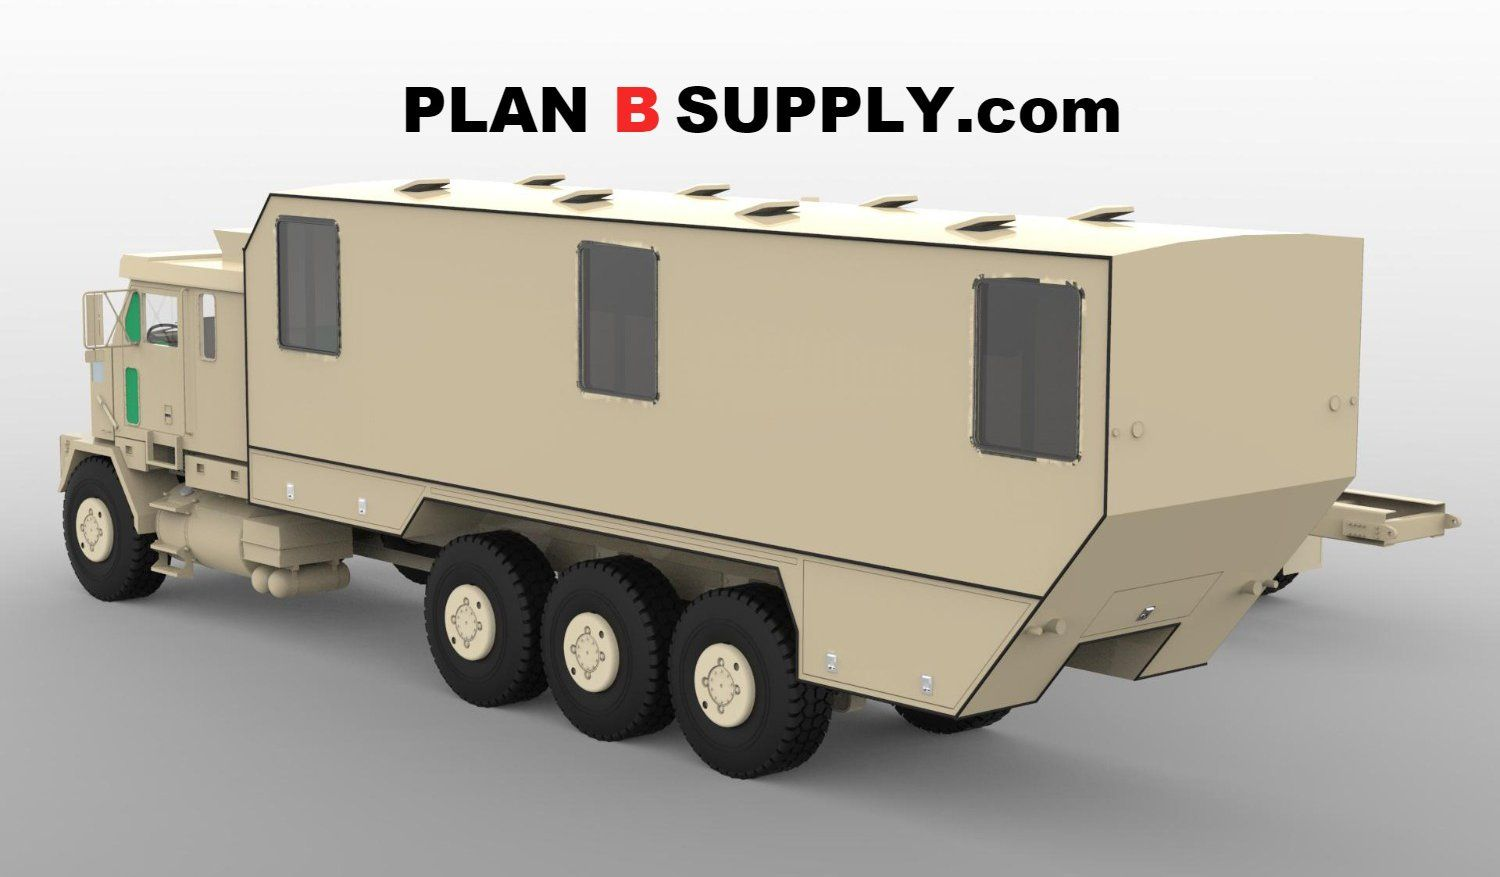 Offroad Rated Heavy Duty 4x4 6x6 8x8 Wheeled Chassis Trucks Expedition Cross Country Rated Used Military Surpl Expedition Truck Expedition Vehicle Army Truck